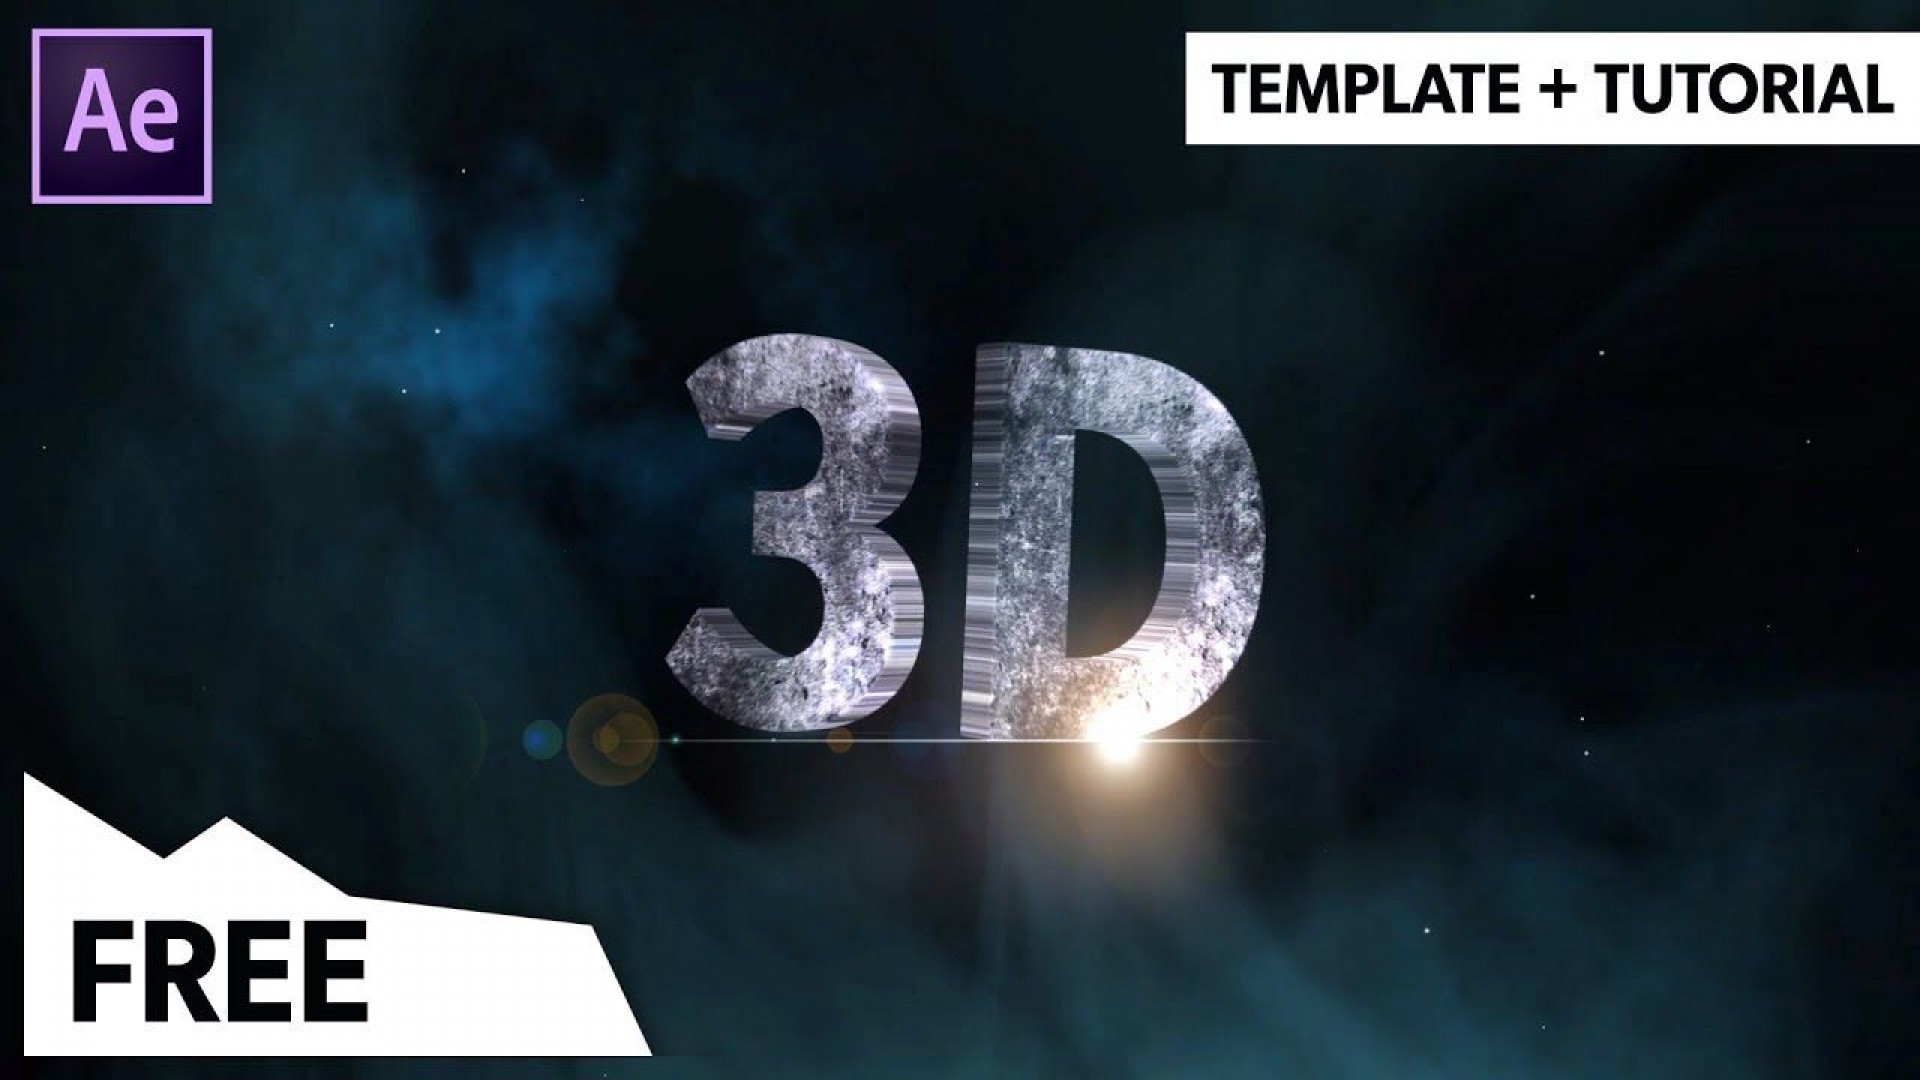 000 Simple Free After Effect Template  3d Logo Animation Inspiration - V2 Download1920